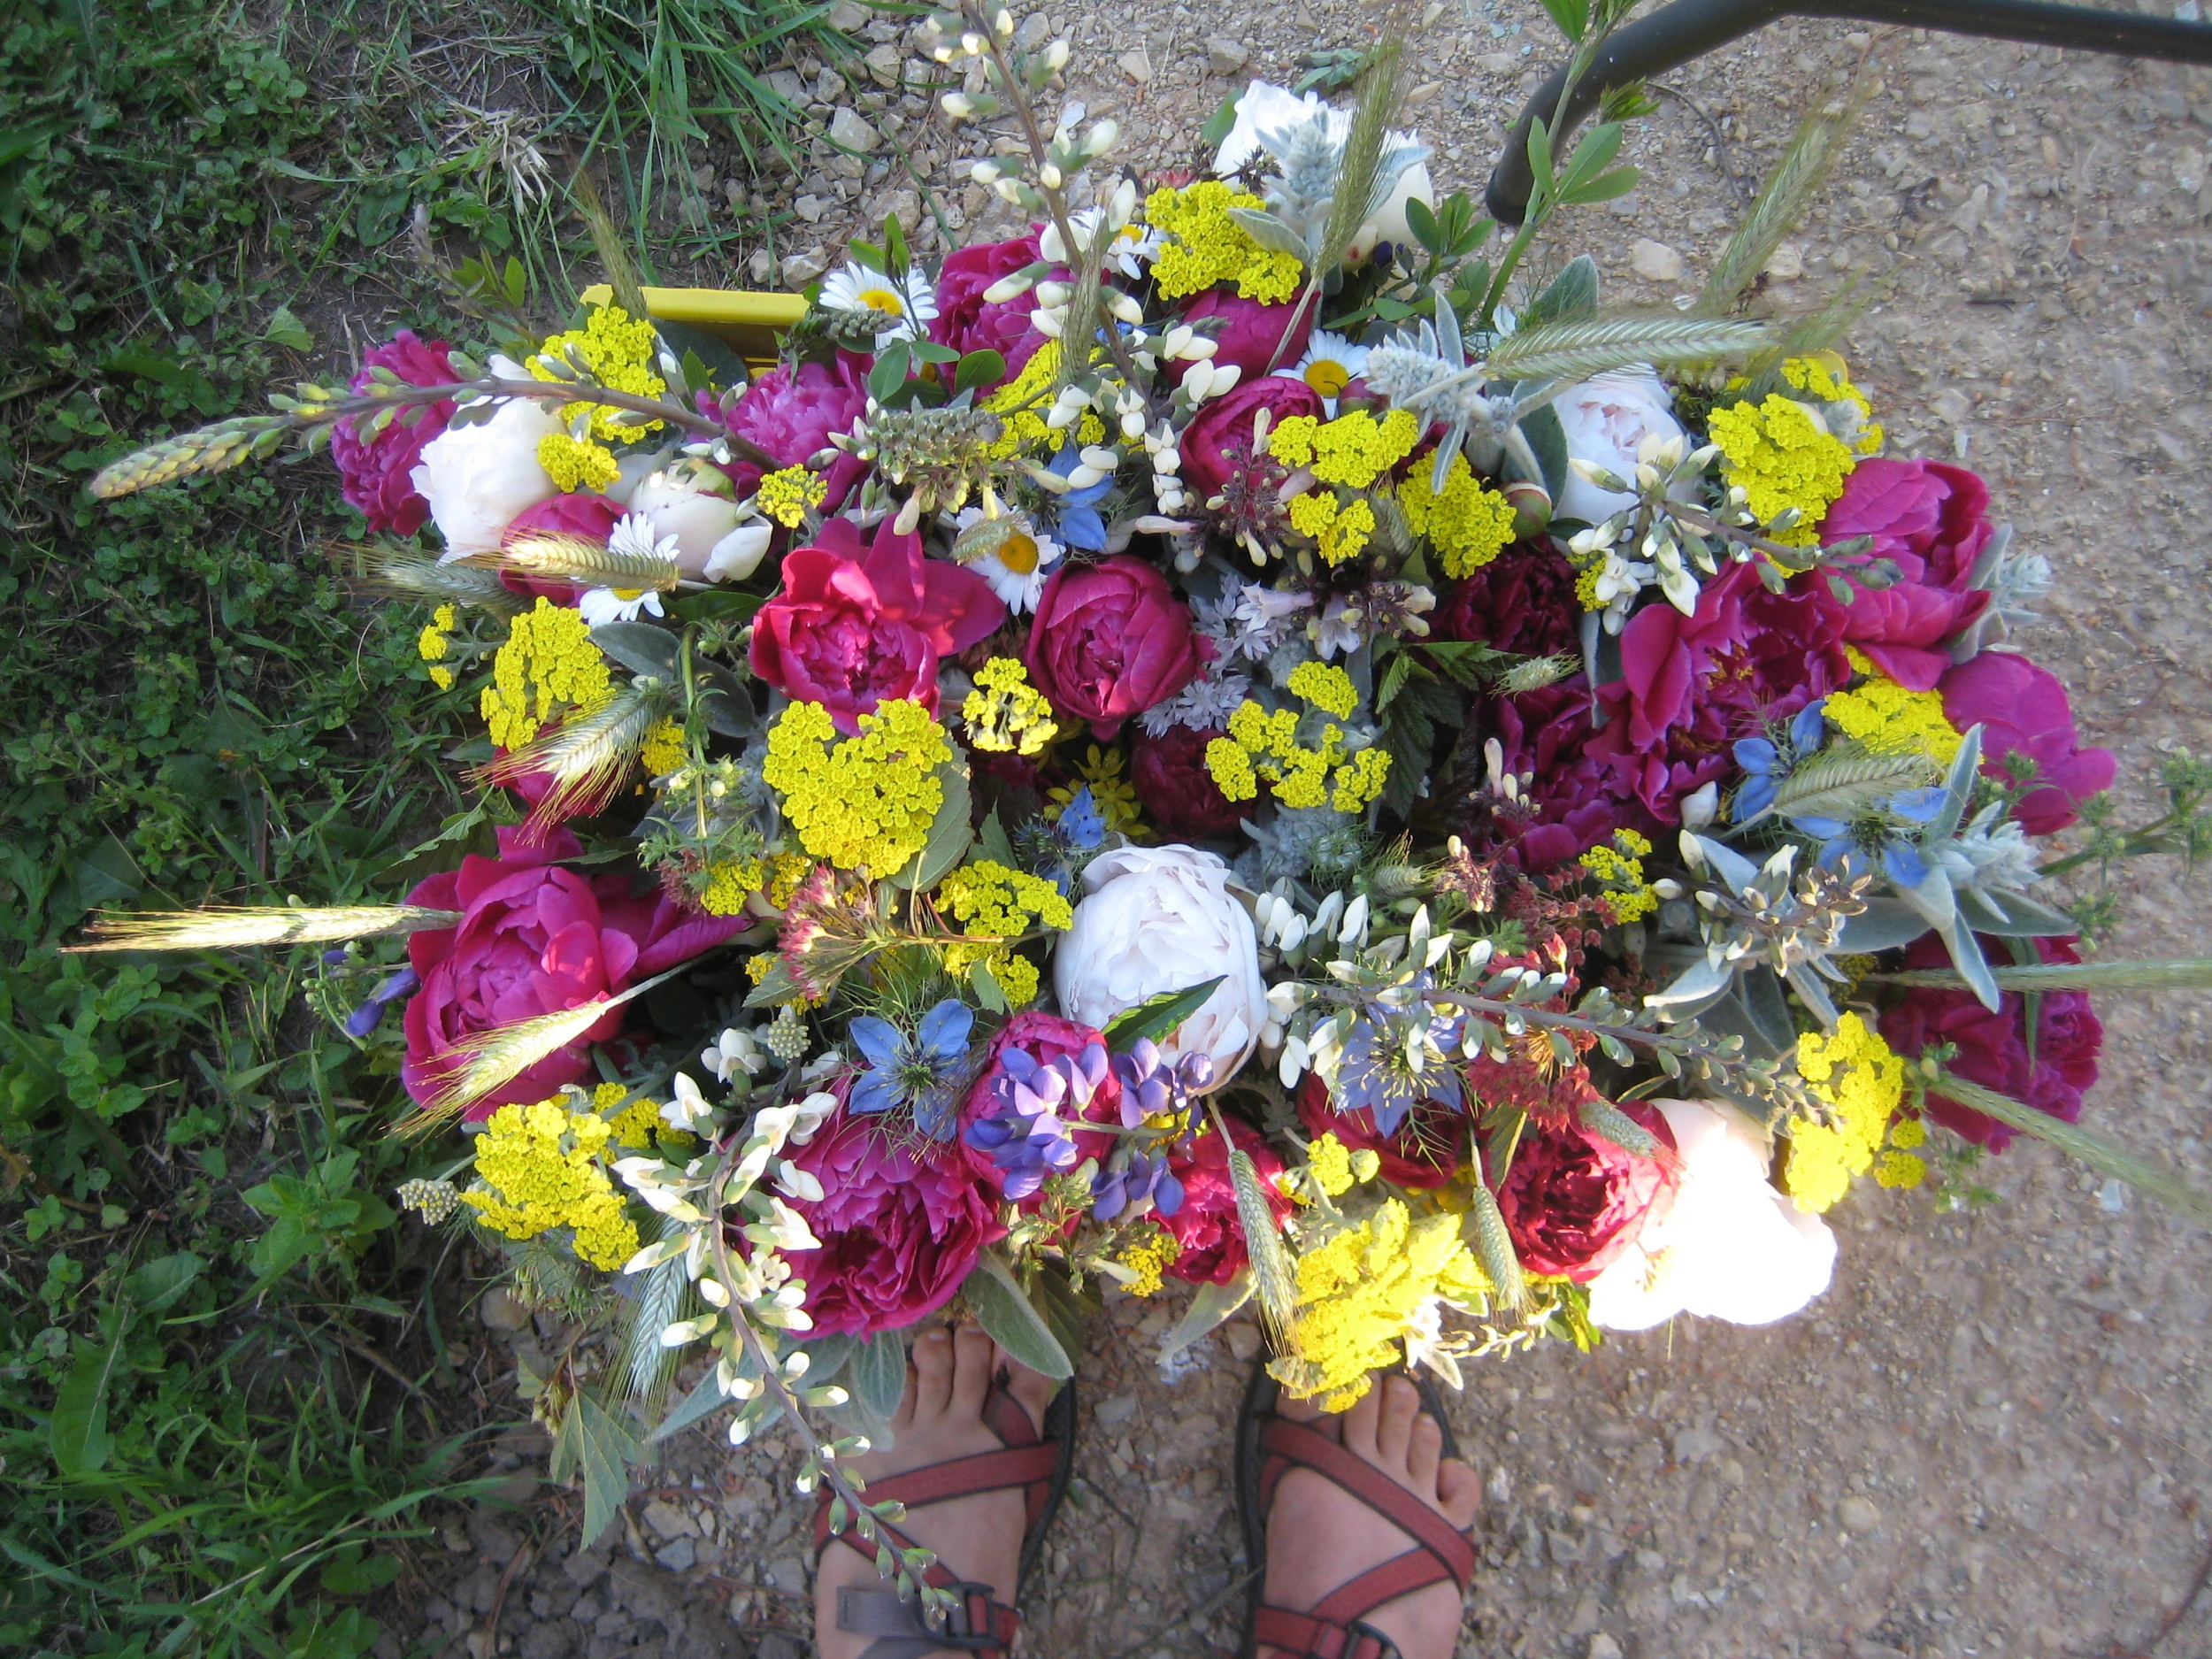 Flower CSA Bouquets June 9, 2016